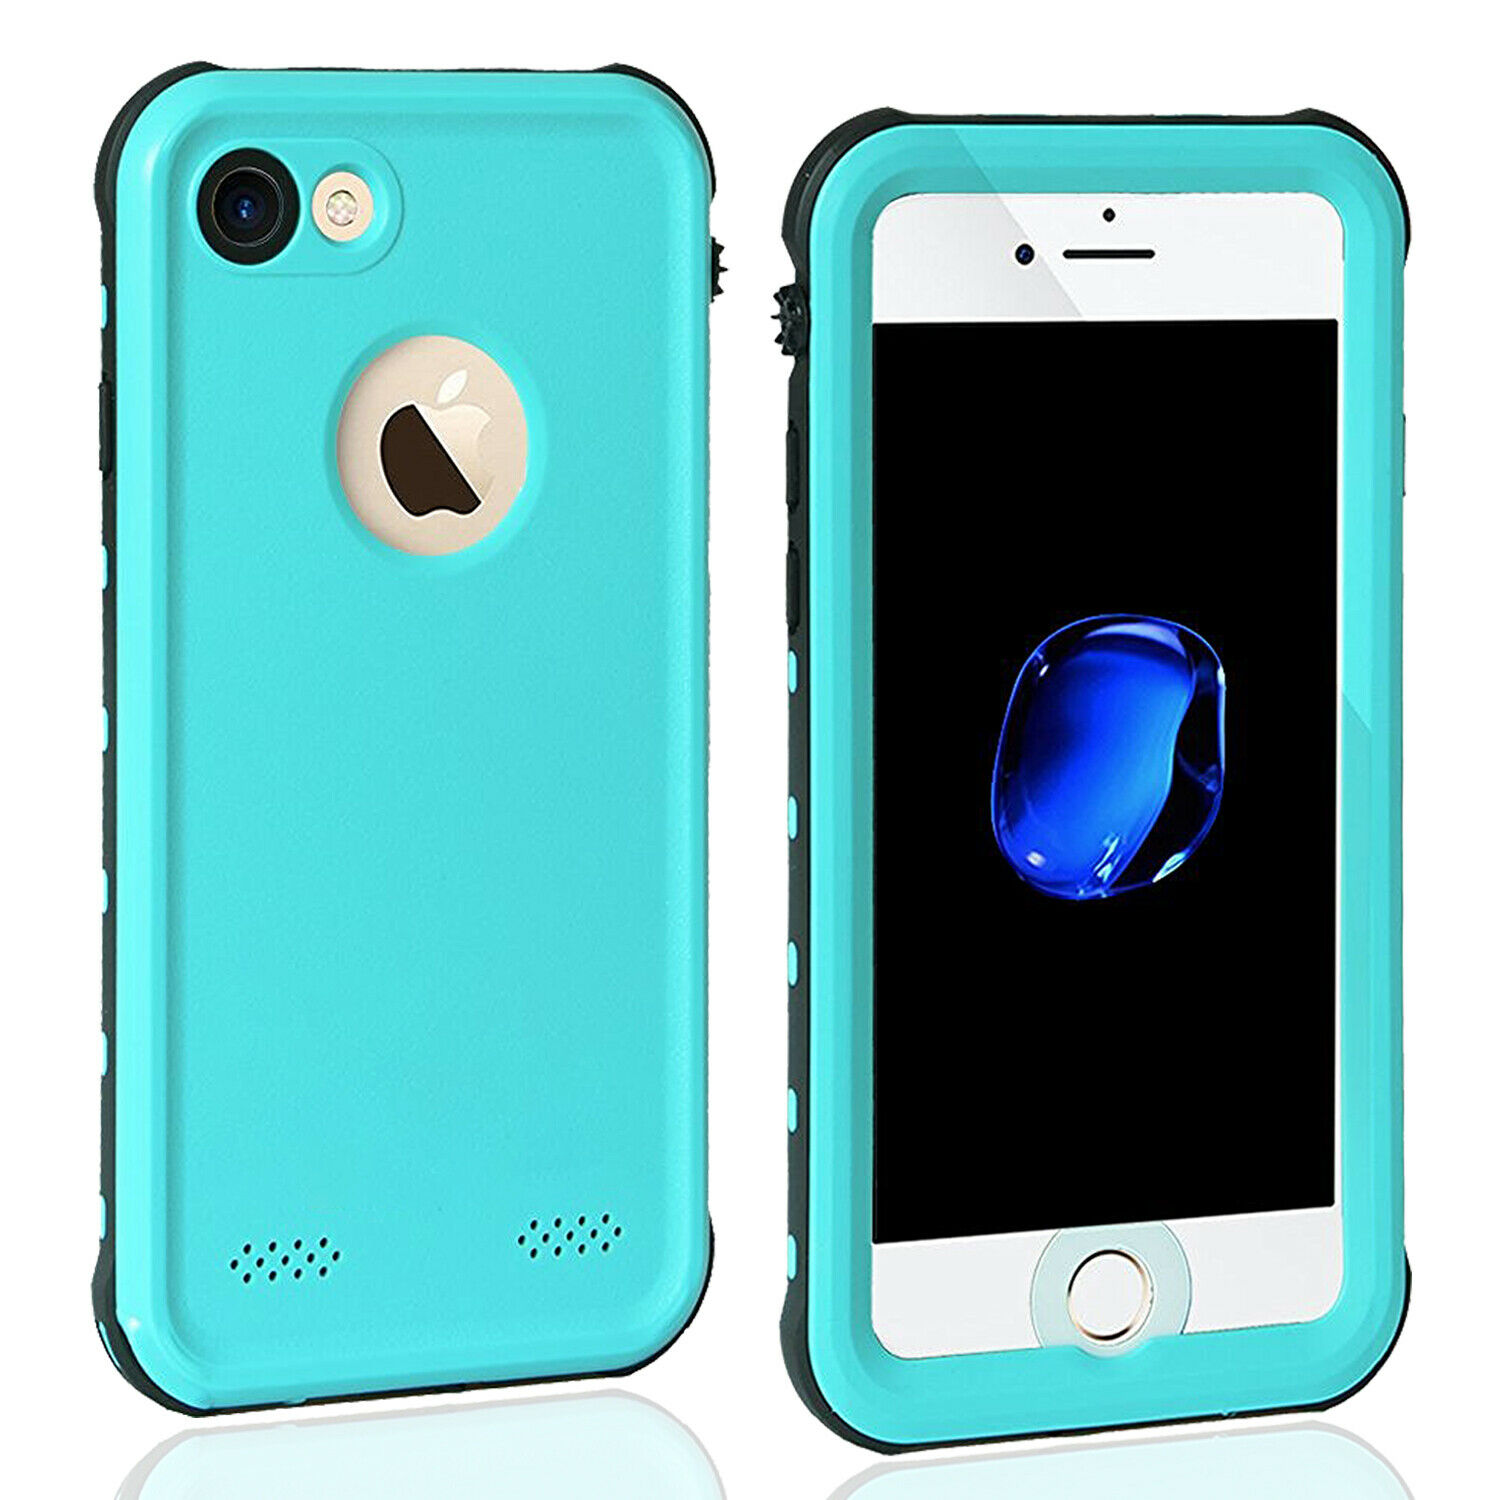 Iphone 7 Waterproof Case Otbba Underwater Cover Full Body Protective Shockproof For Sale Online Ebay